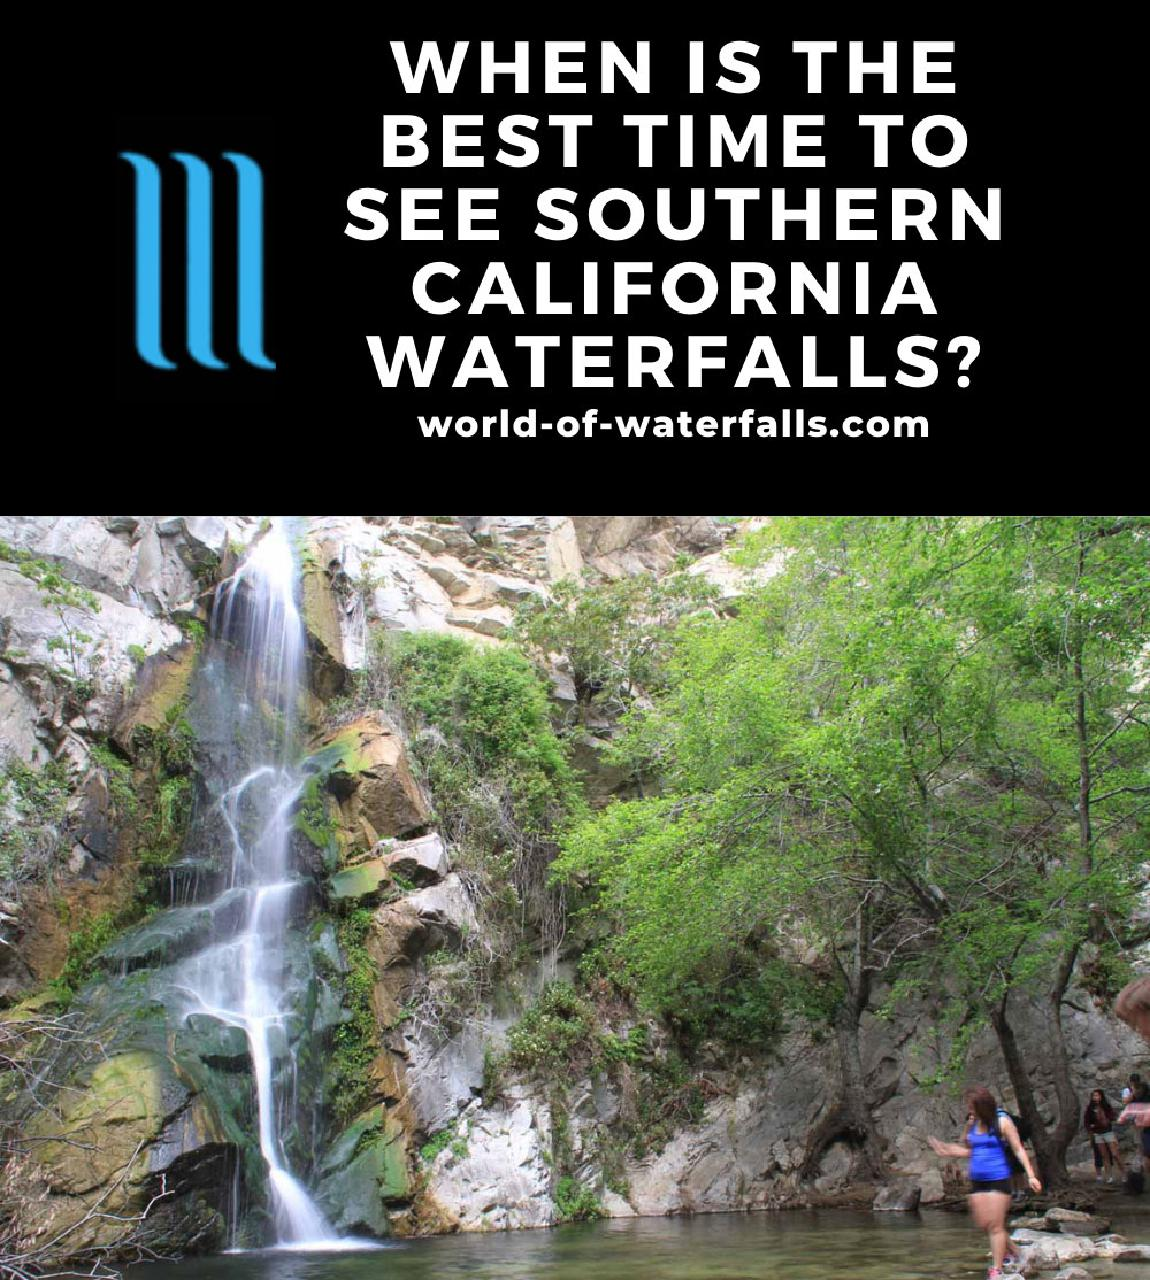 When is the Best Time to see Southern California Waterfalls?